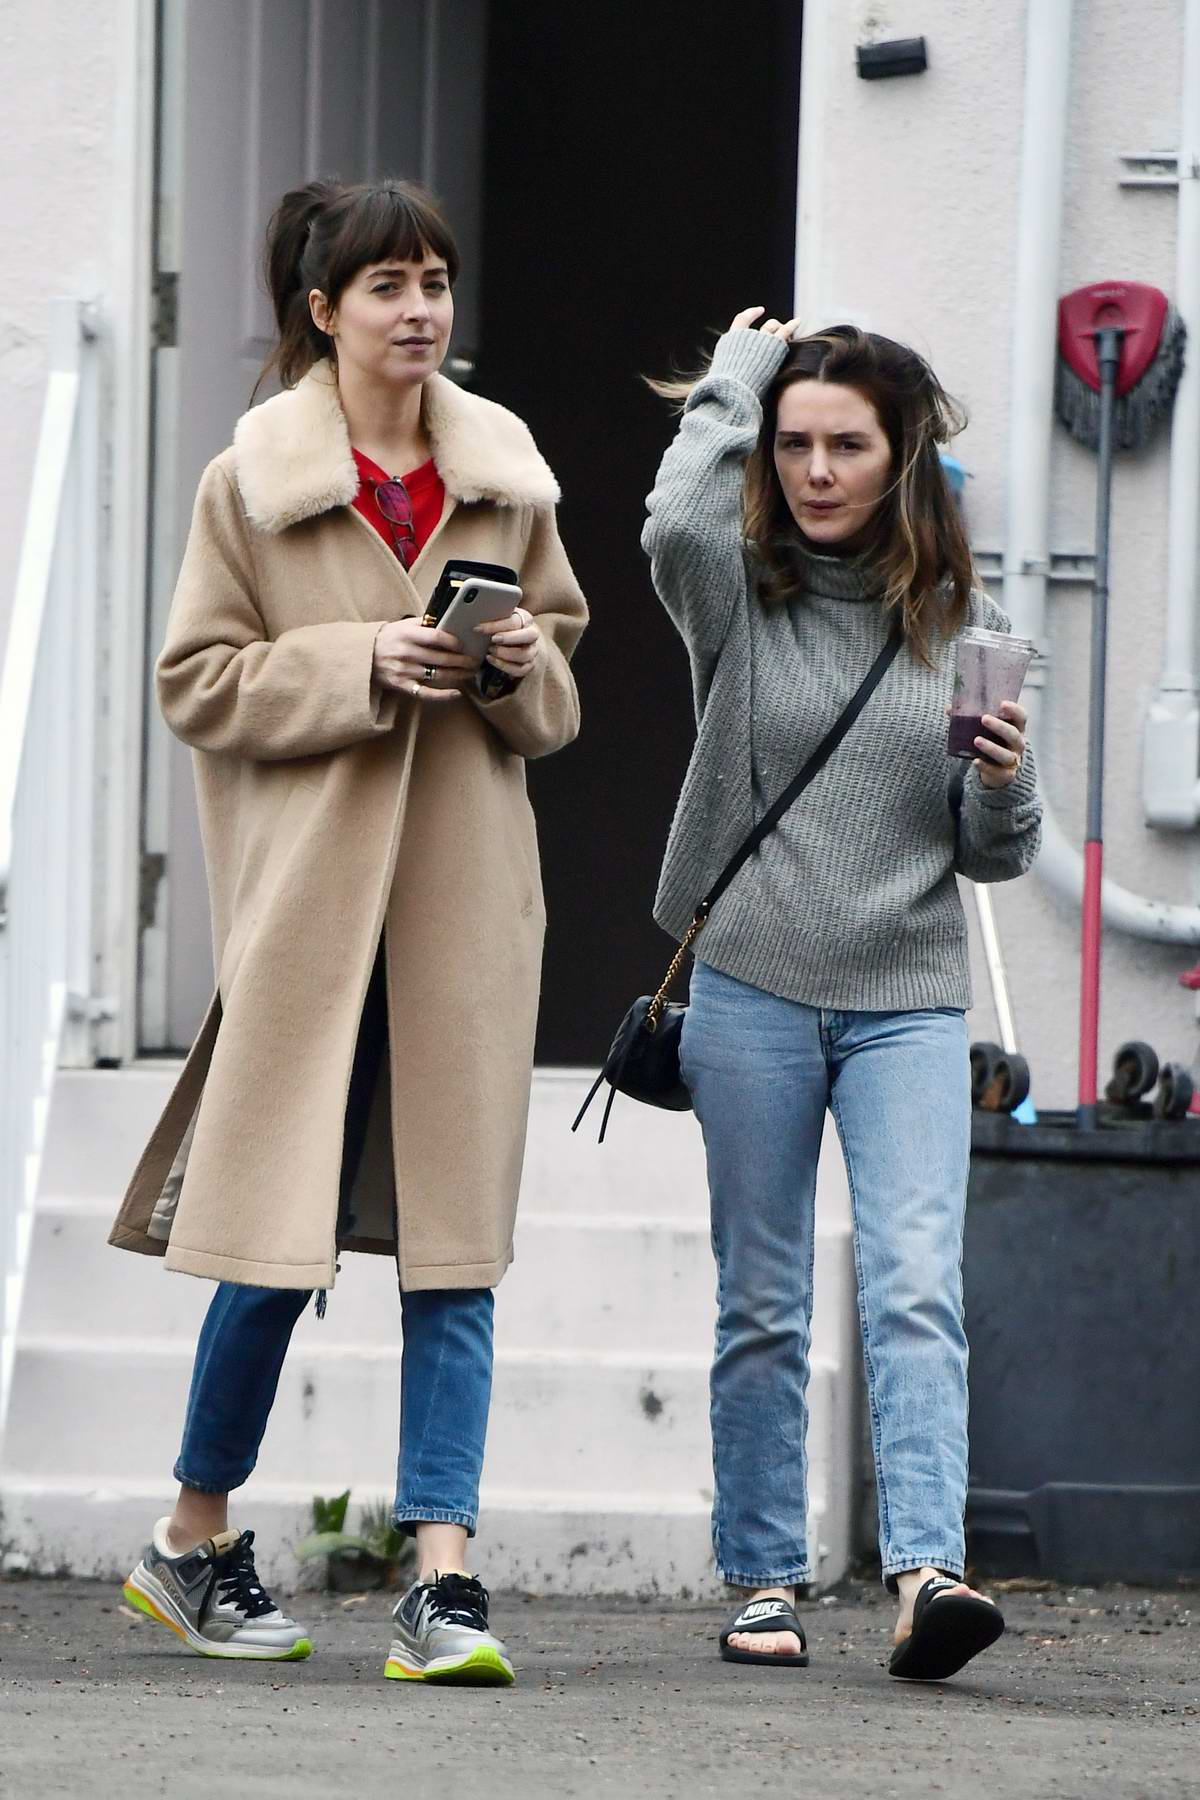 Dakota Johnson and Addison Timlin stop by a Nail Salon in Los Angeles